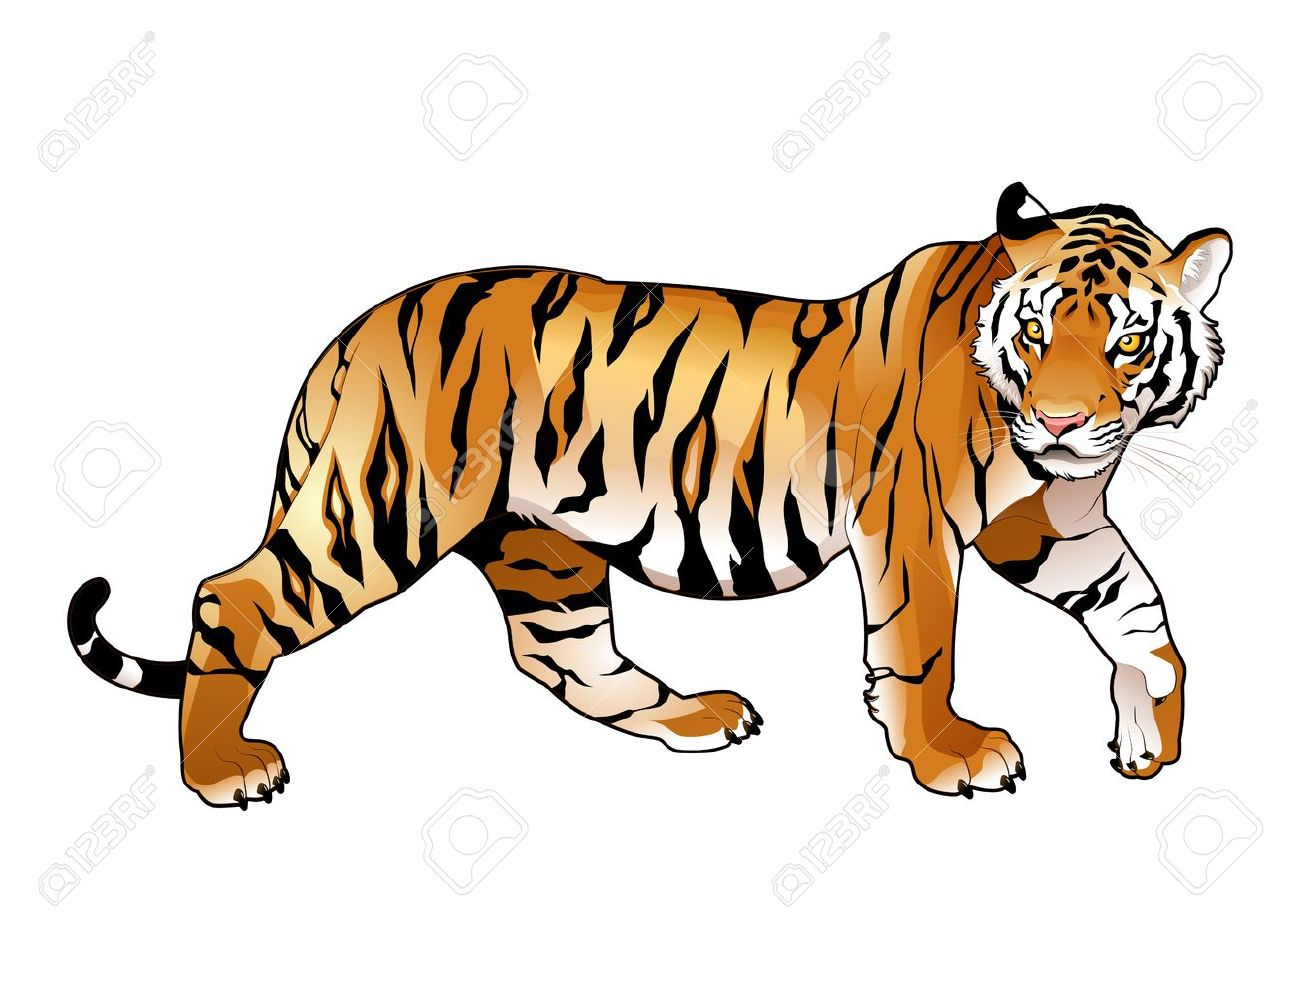 Free tiger clipart 4 » Clipart Station.